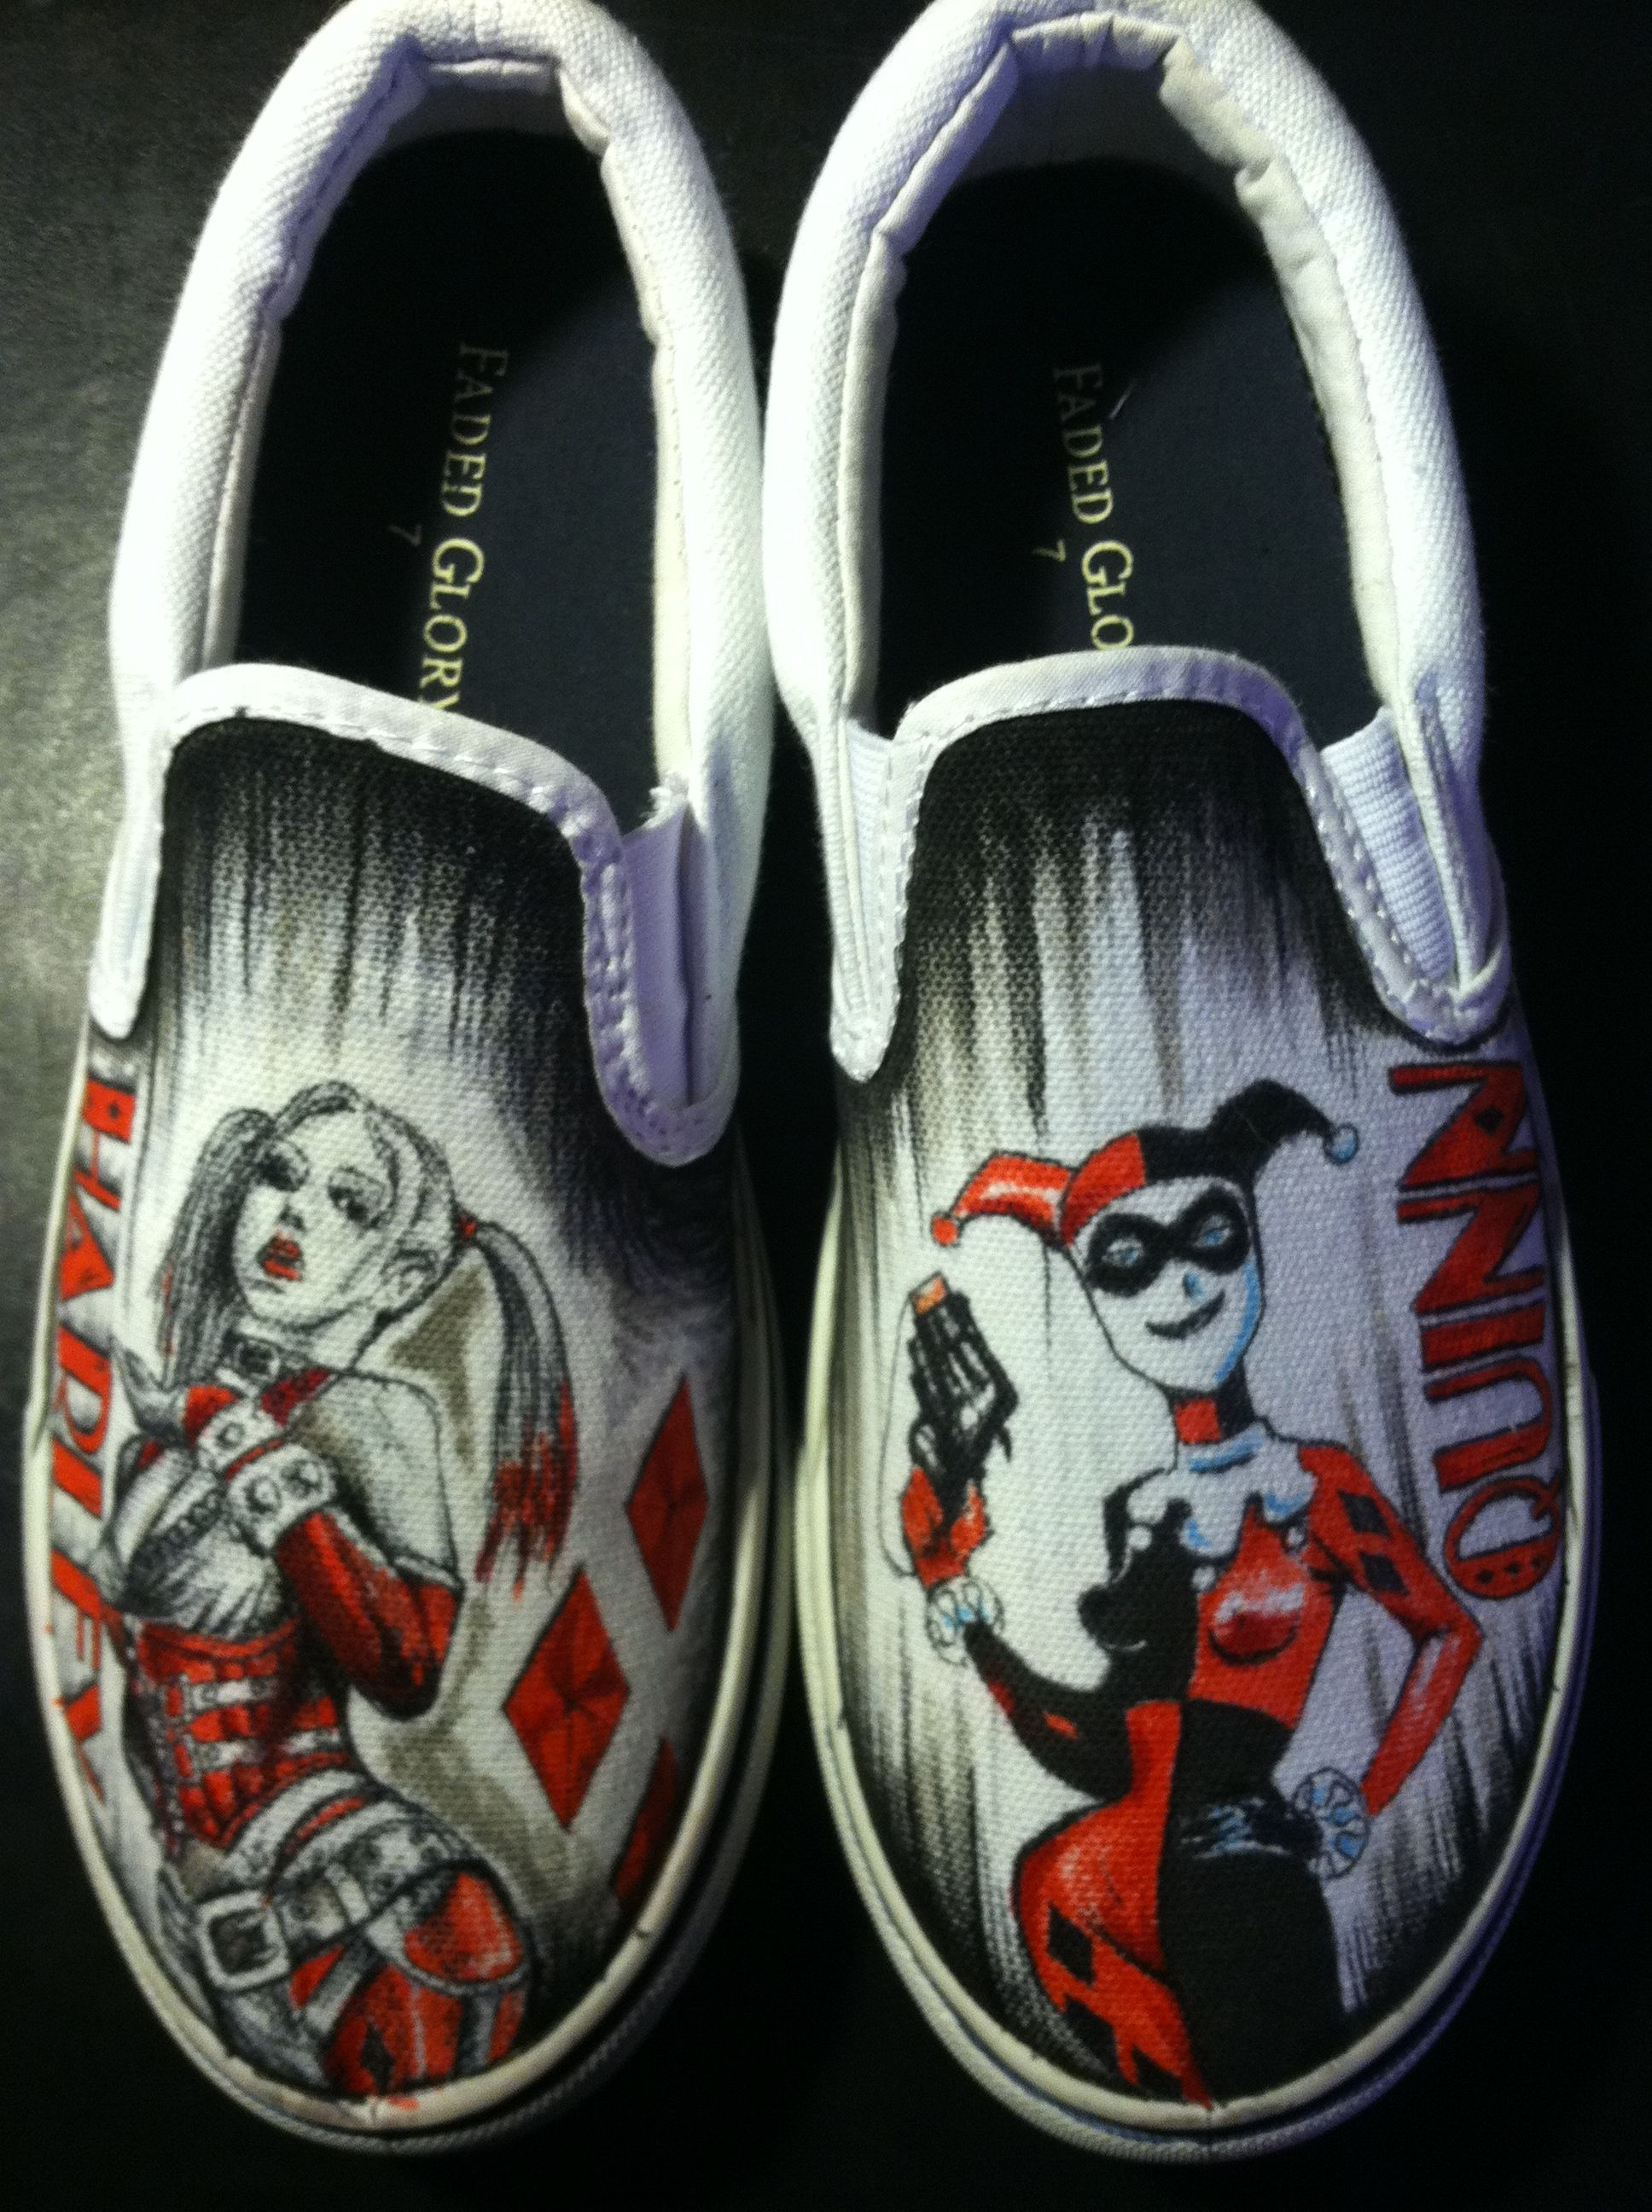 Drawn shoe custom drawn Hand Quinn Drawn Crafted Buy